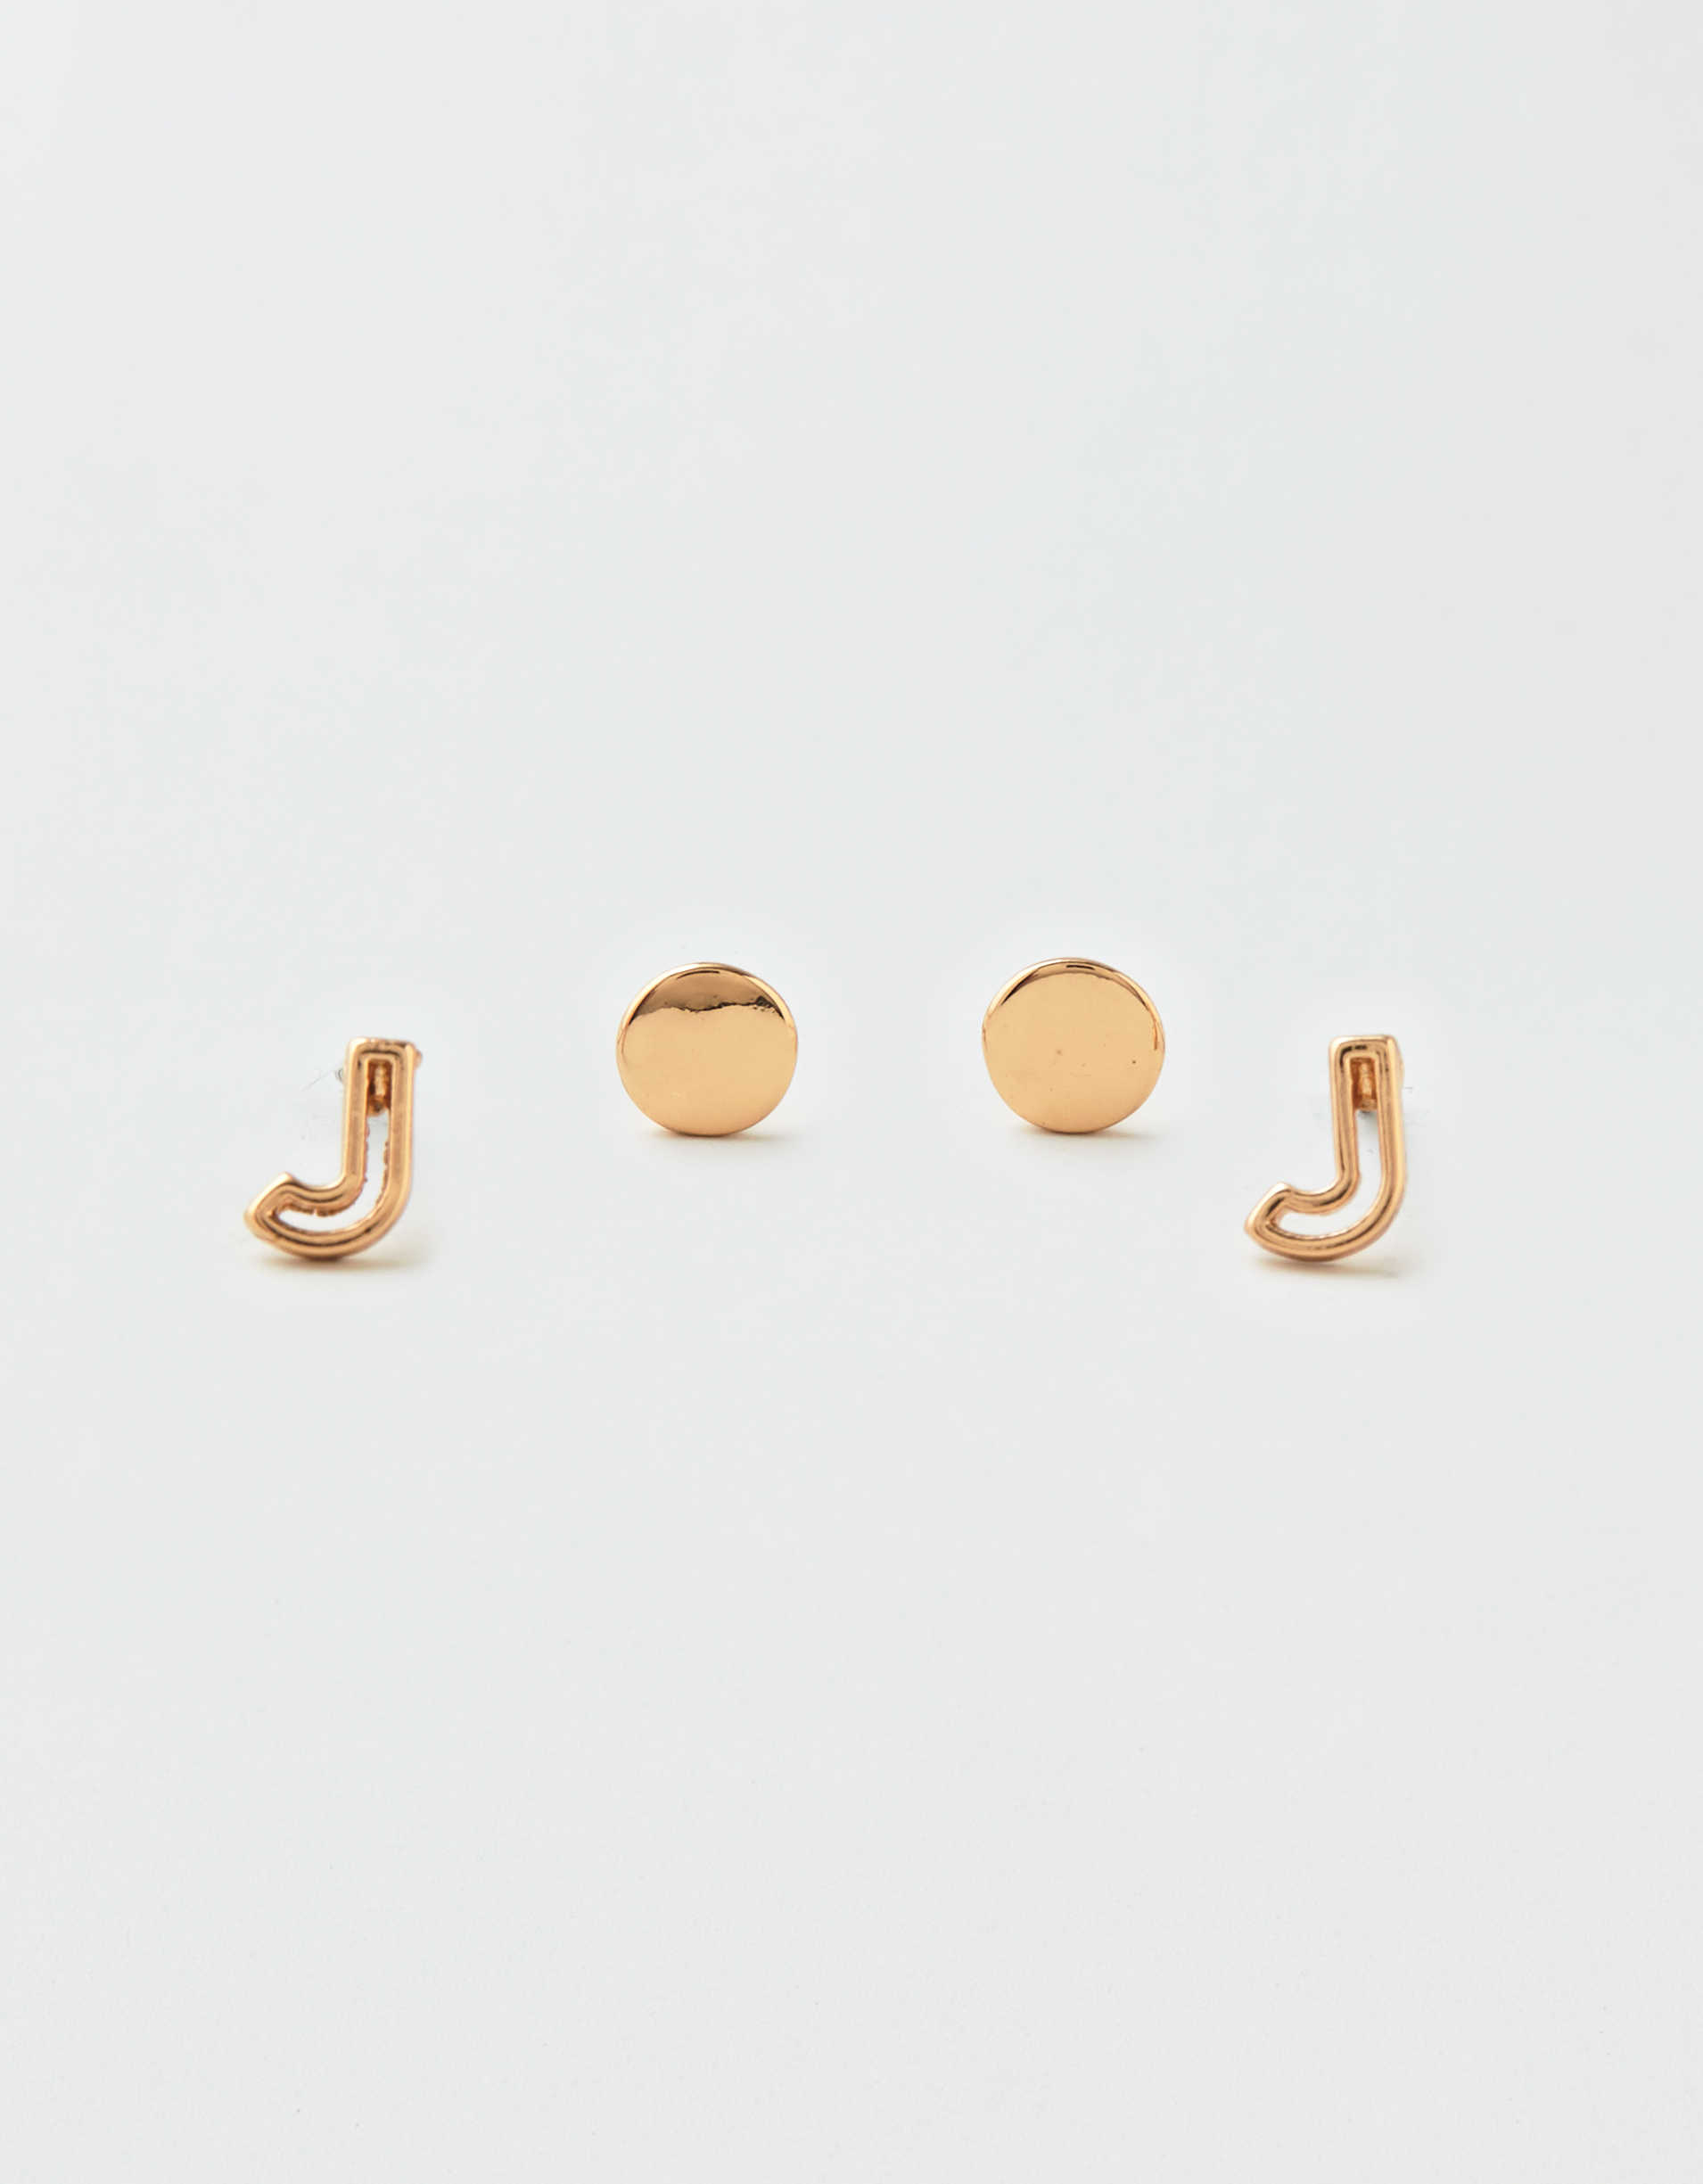 AEO J + Stud Earrings 2-Pack